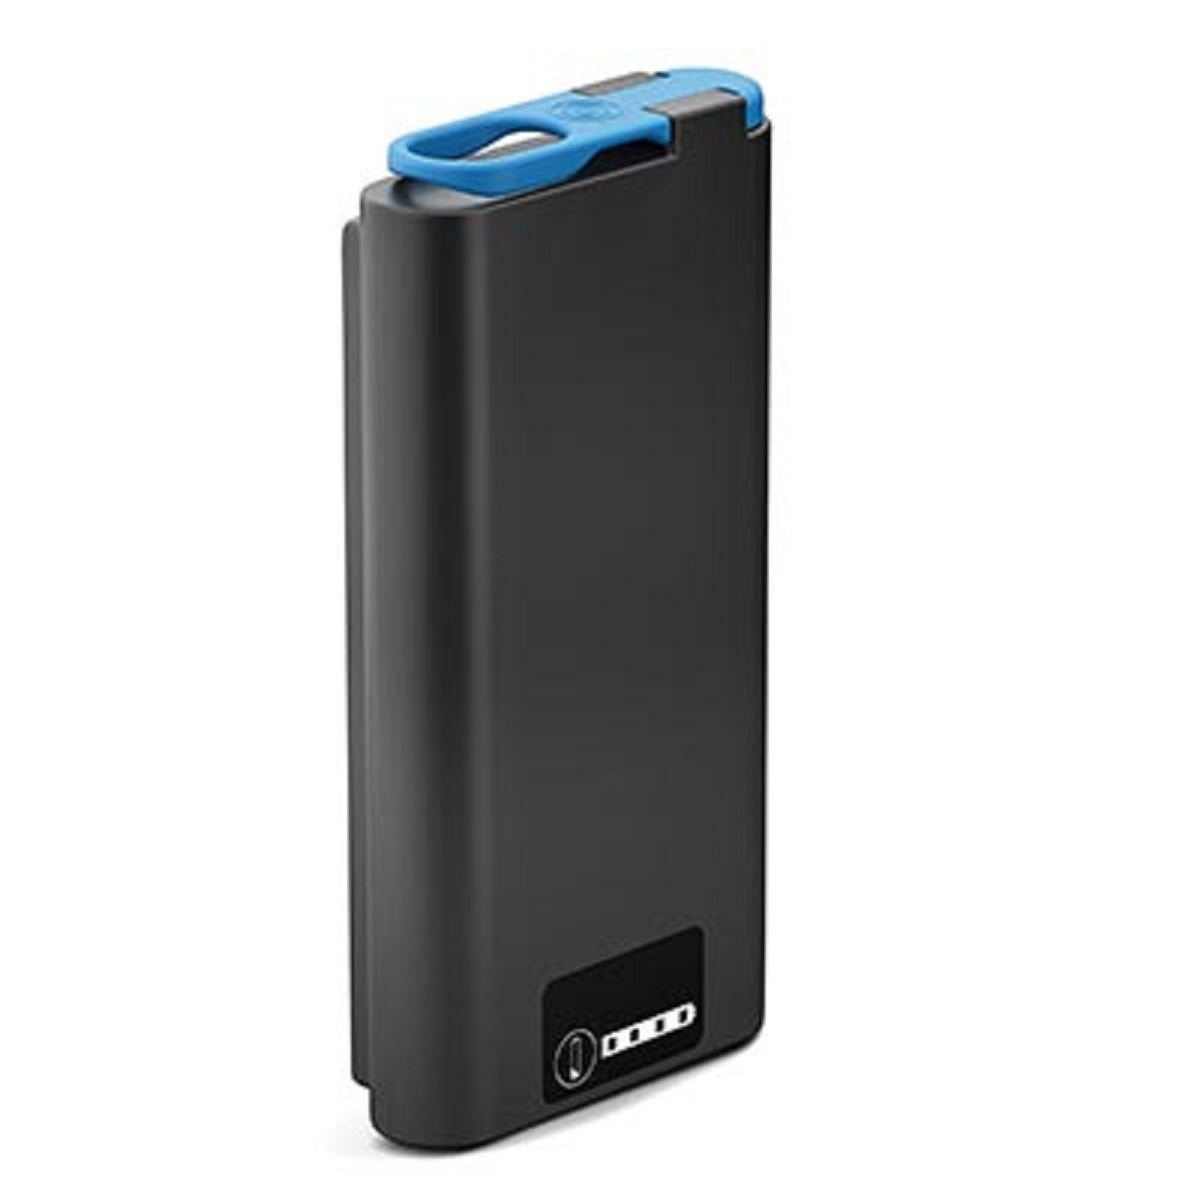 Invacare Platinum Portable Replacement Battery - Used